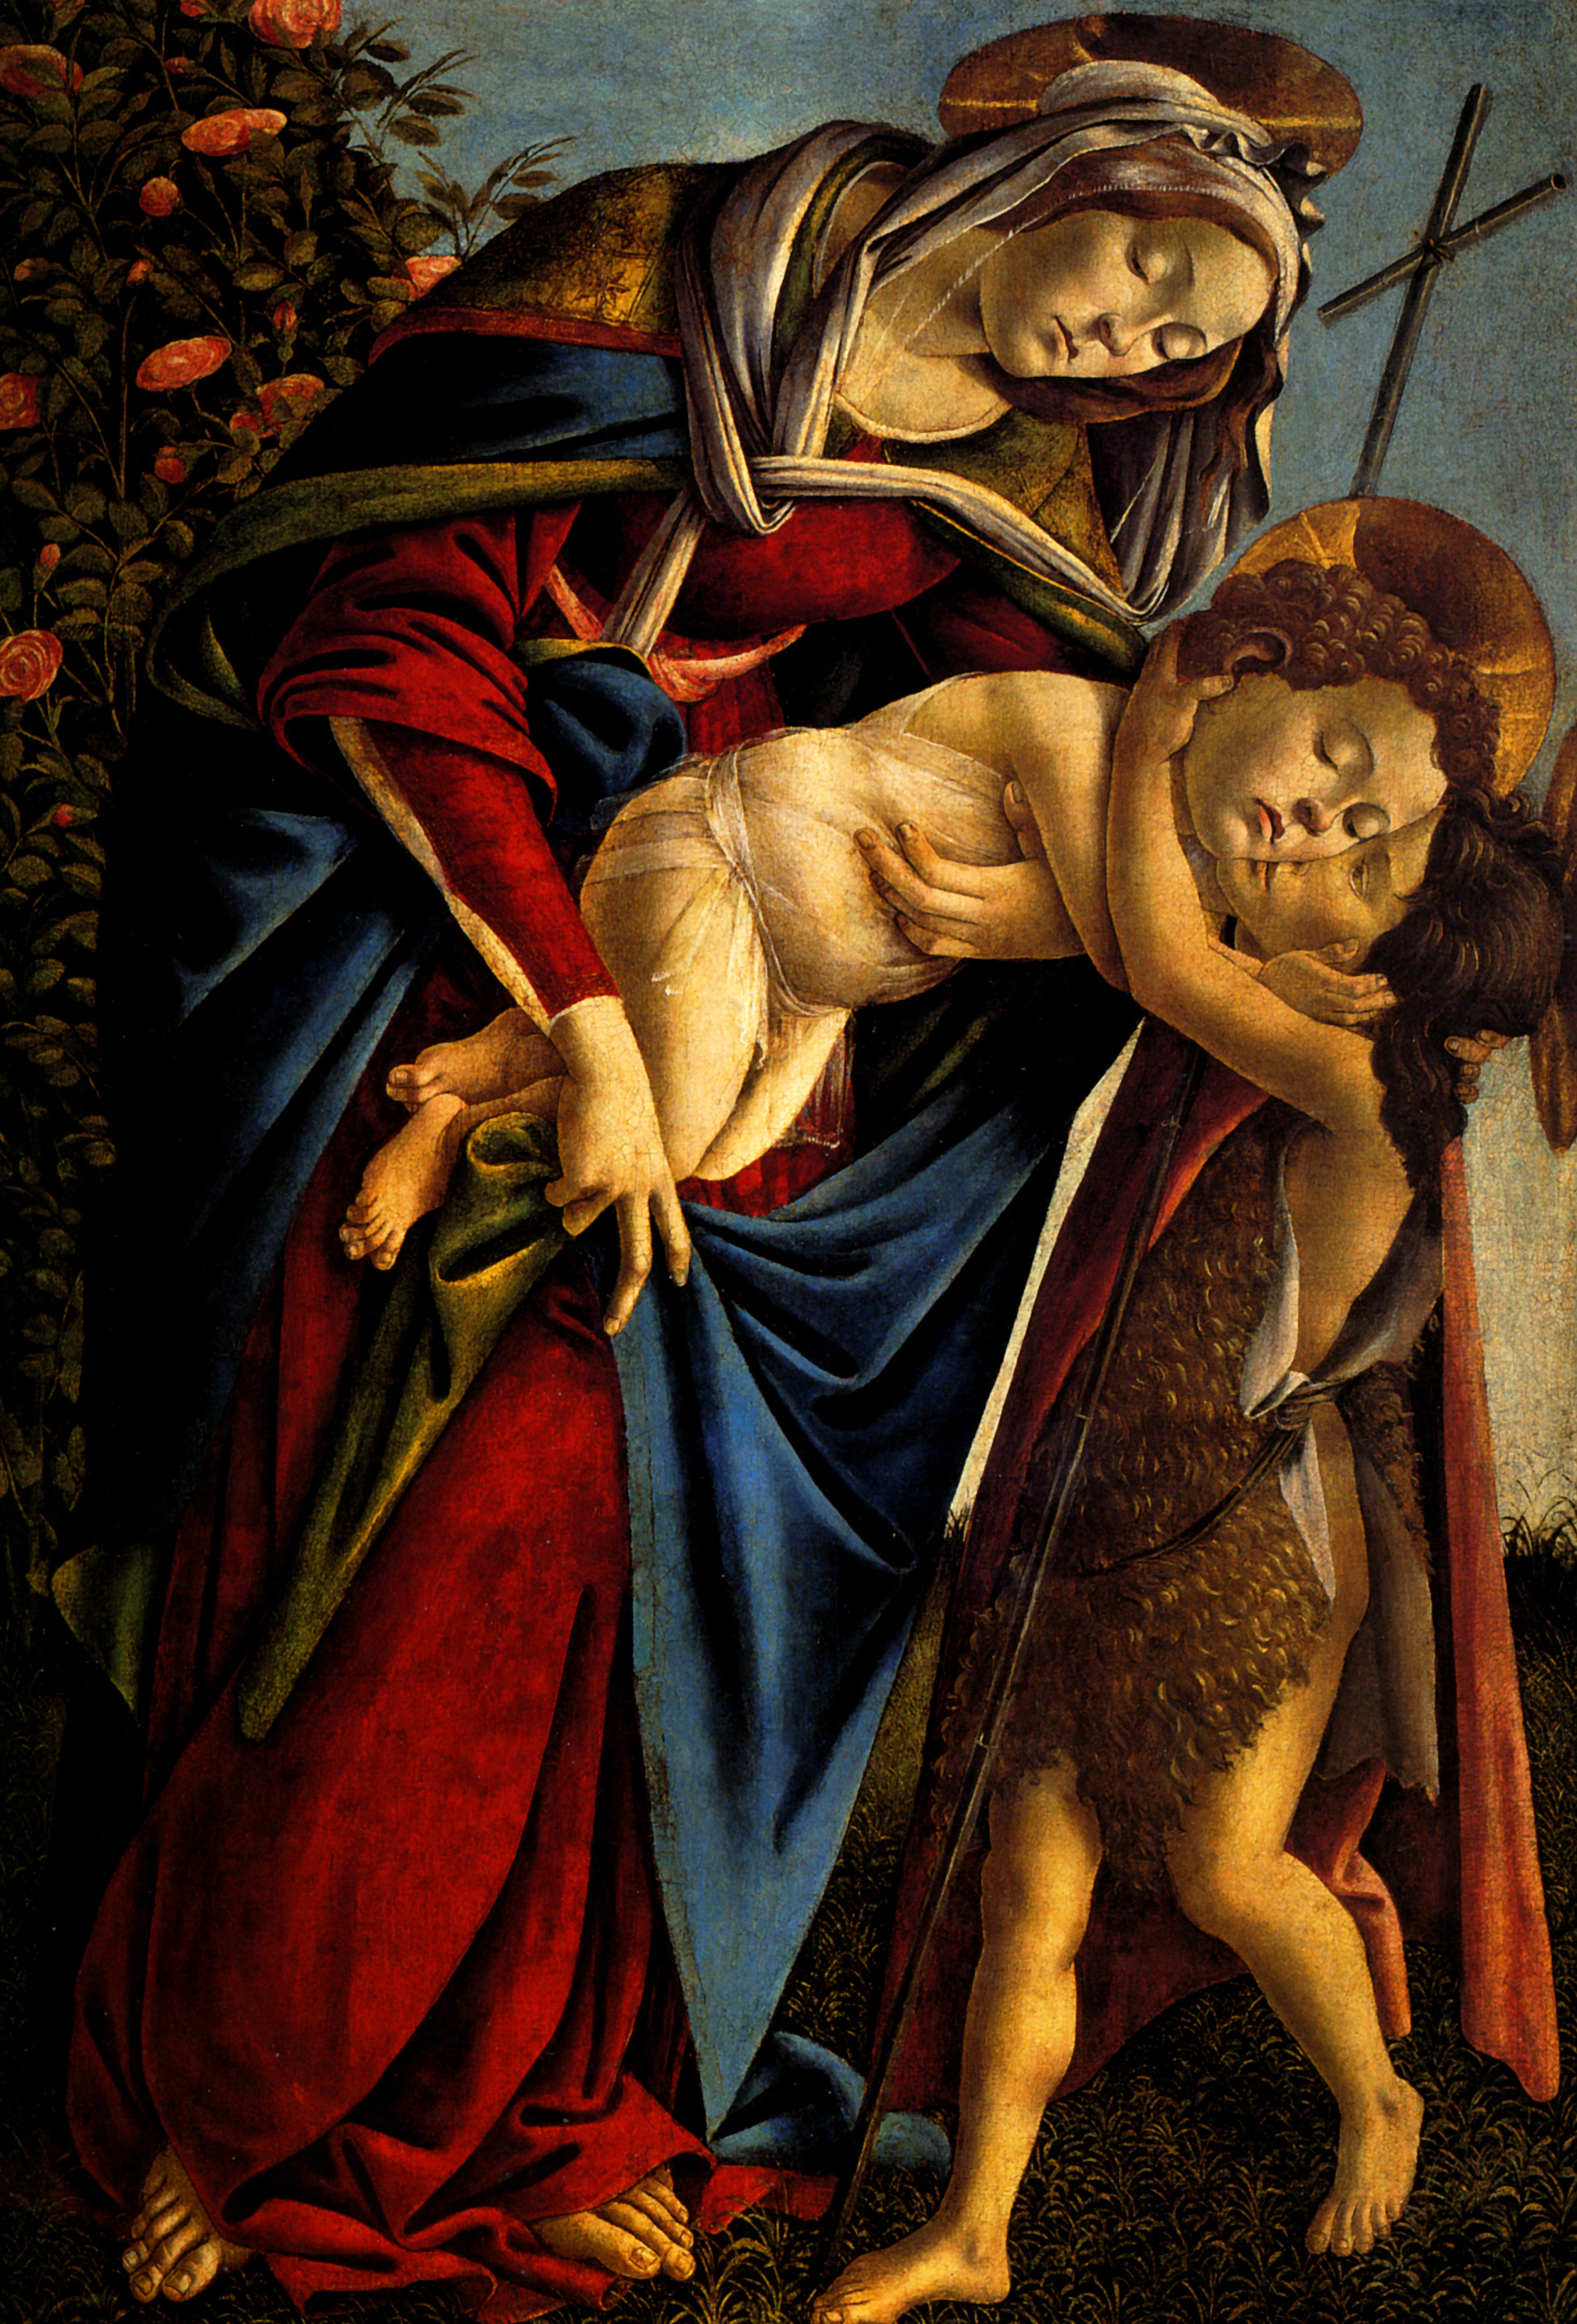 an essay on the artists and artworks of sandro boticelli and polykleitos